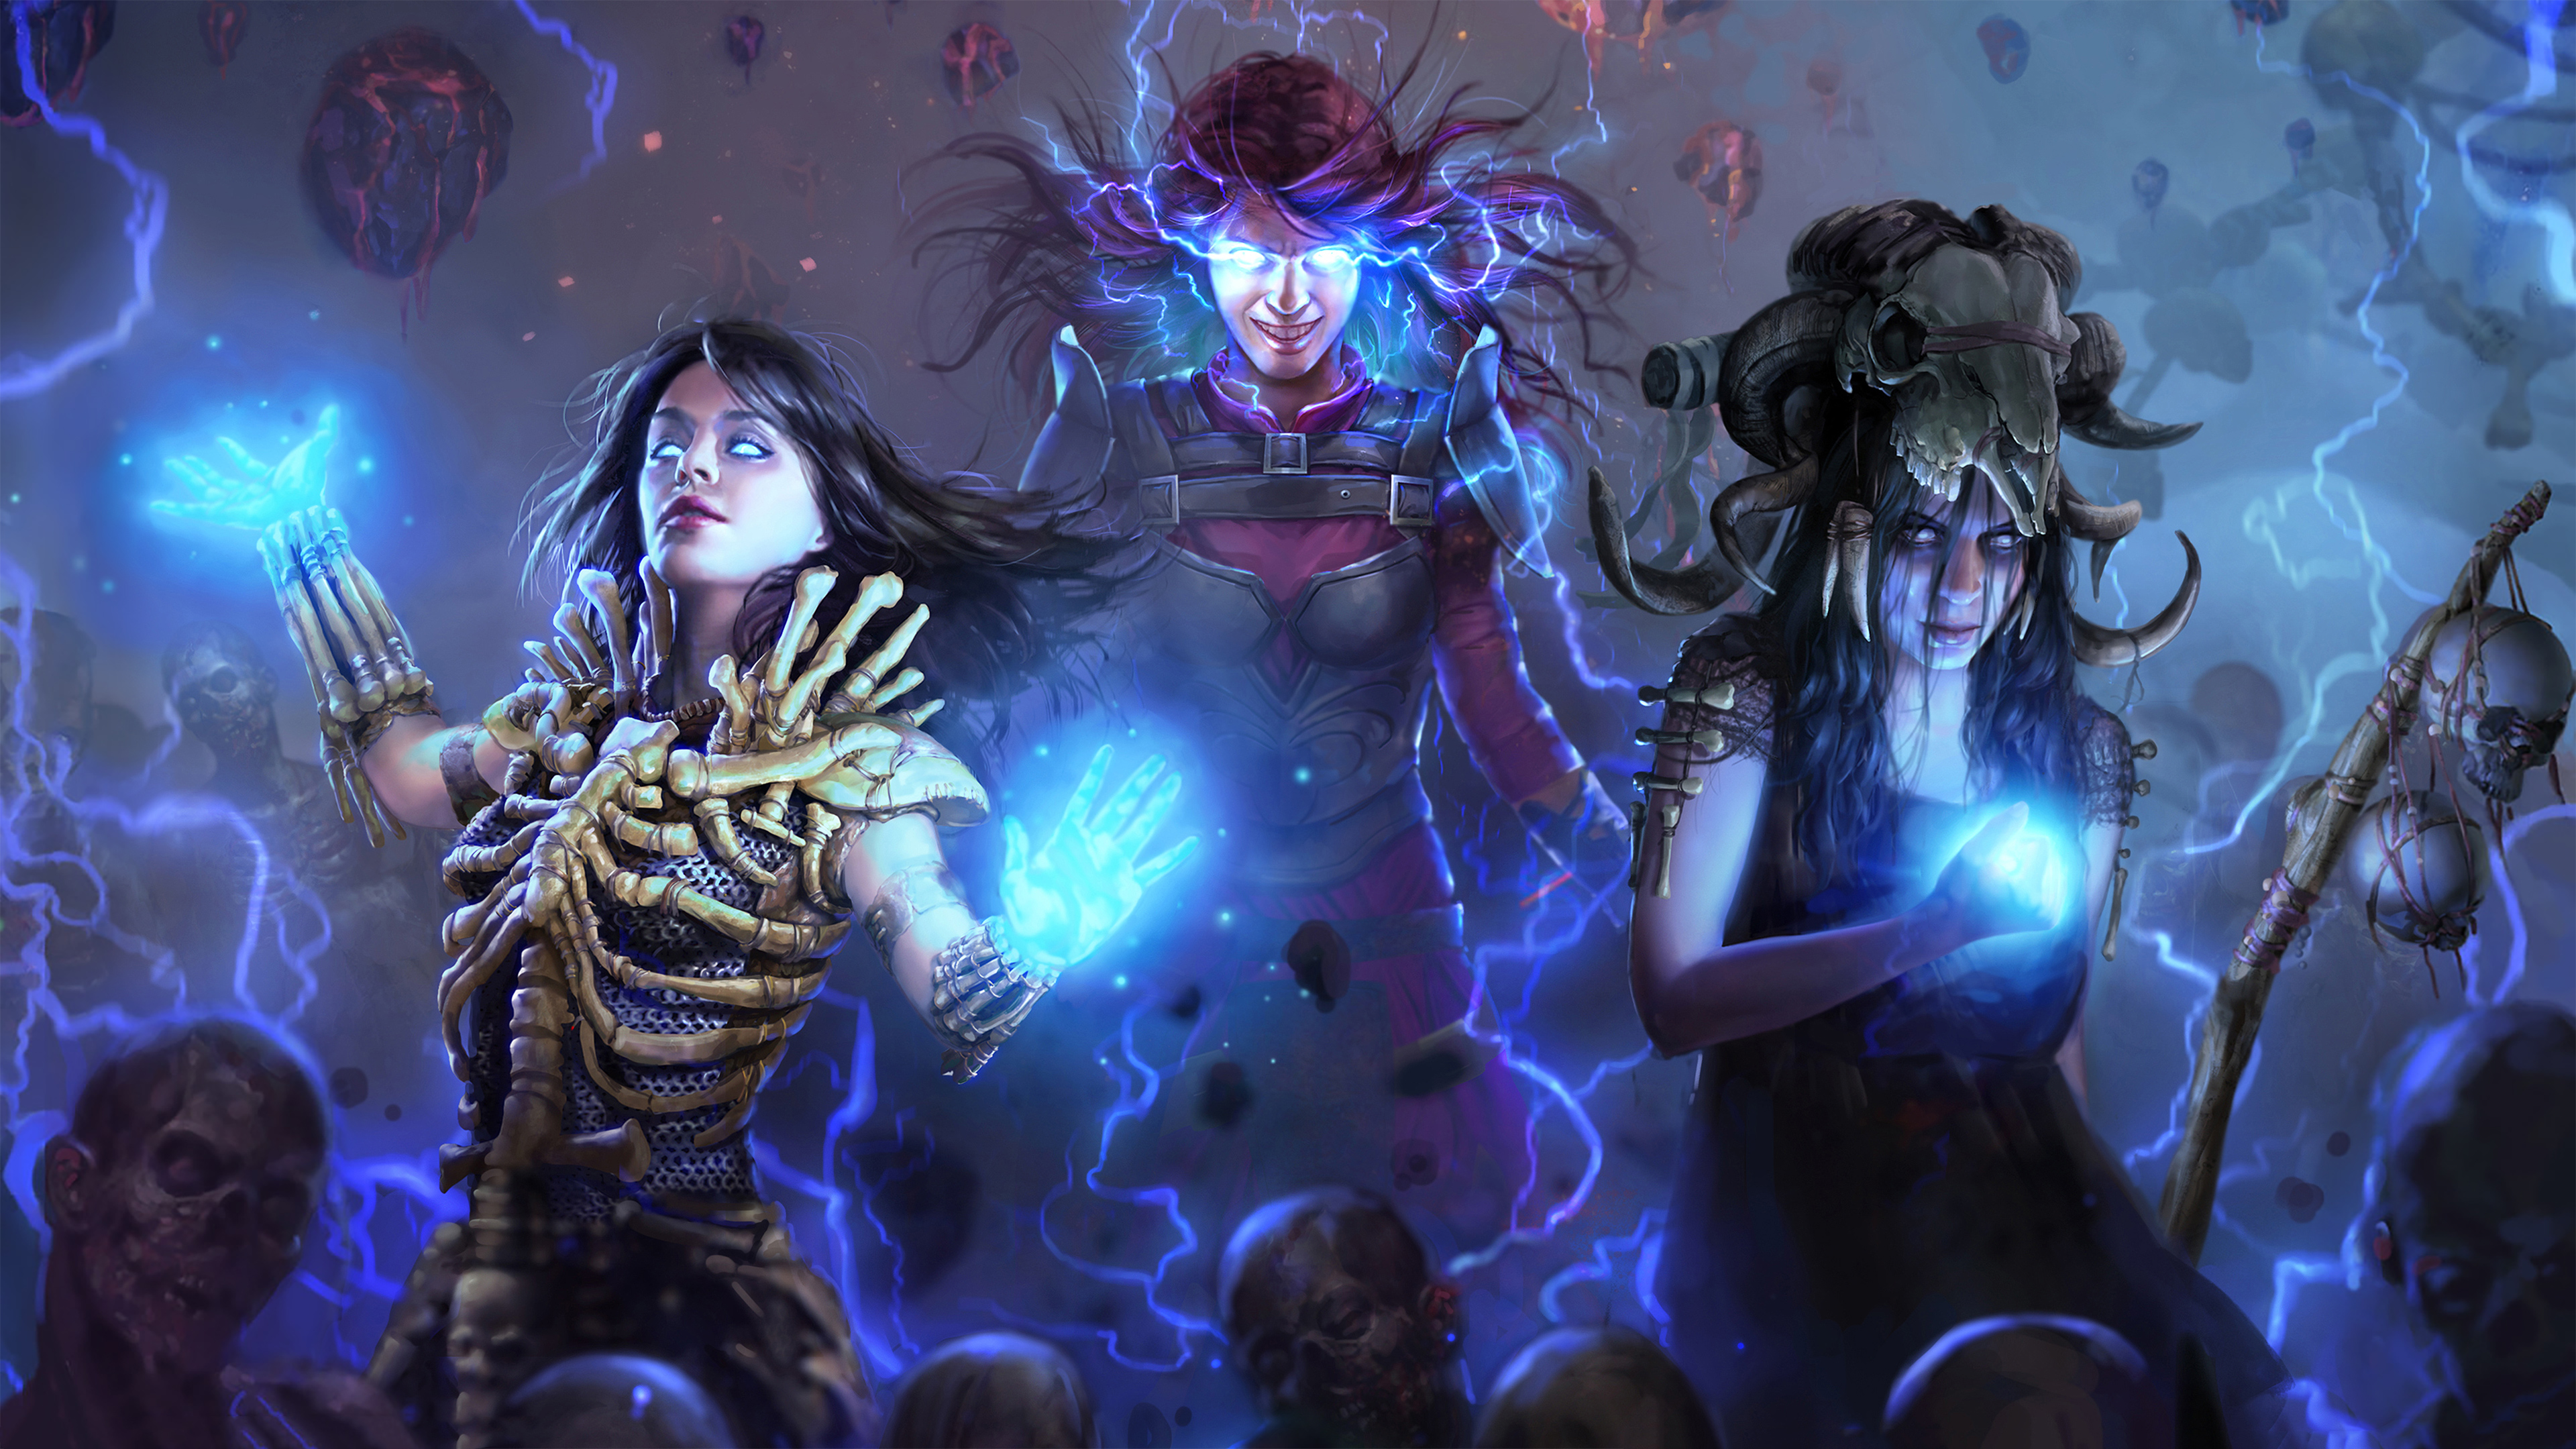 path of exile ascendancy 4k 1542494947 - Path Of Exile Ascendancy 4k - path of exile ascendancy wallpapers, hd-wallpapers, games wallpapers, 4k-wallpapers, 2018 games wallpapers